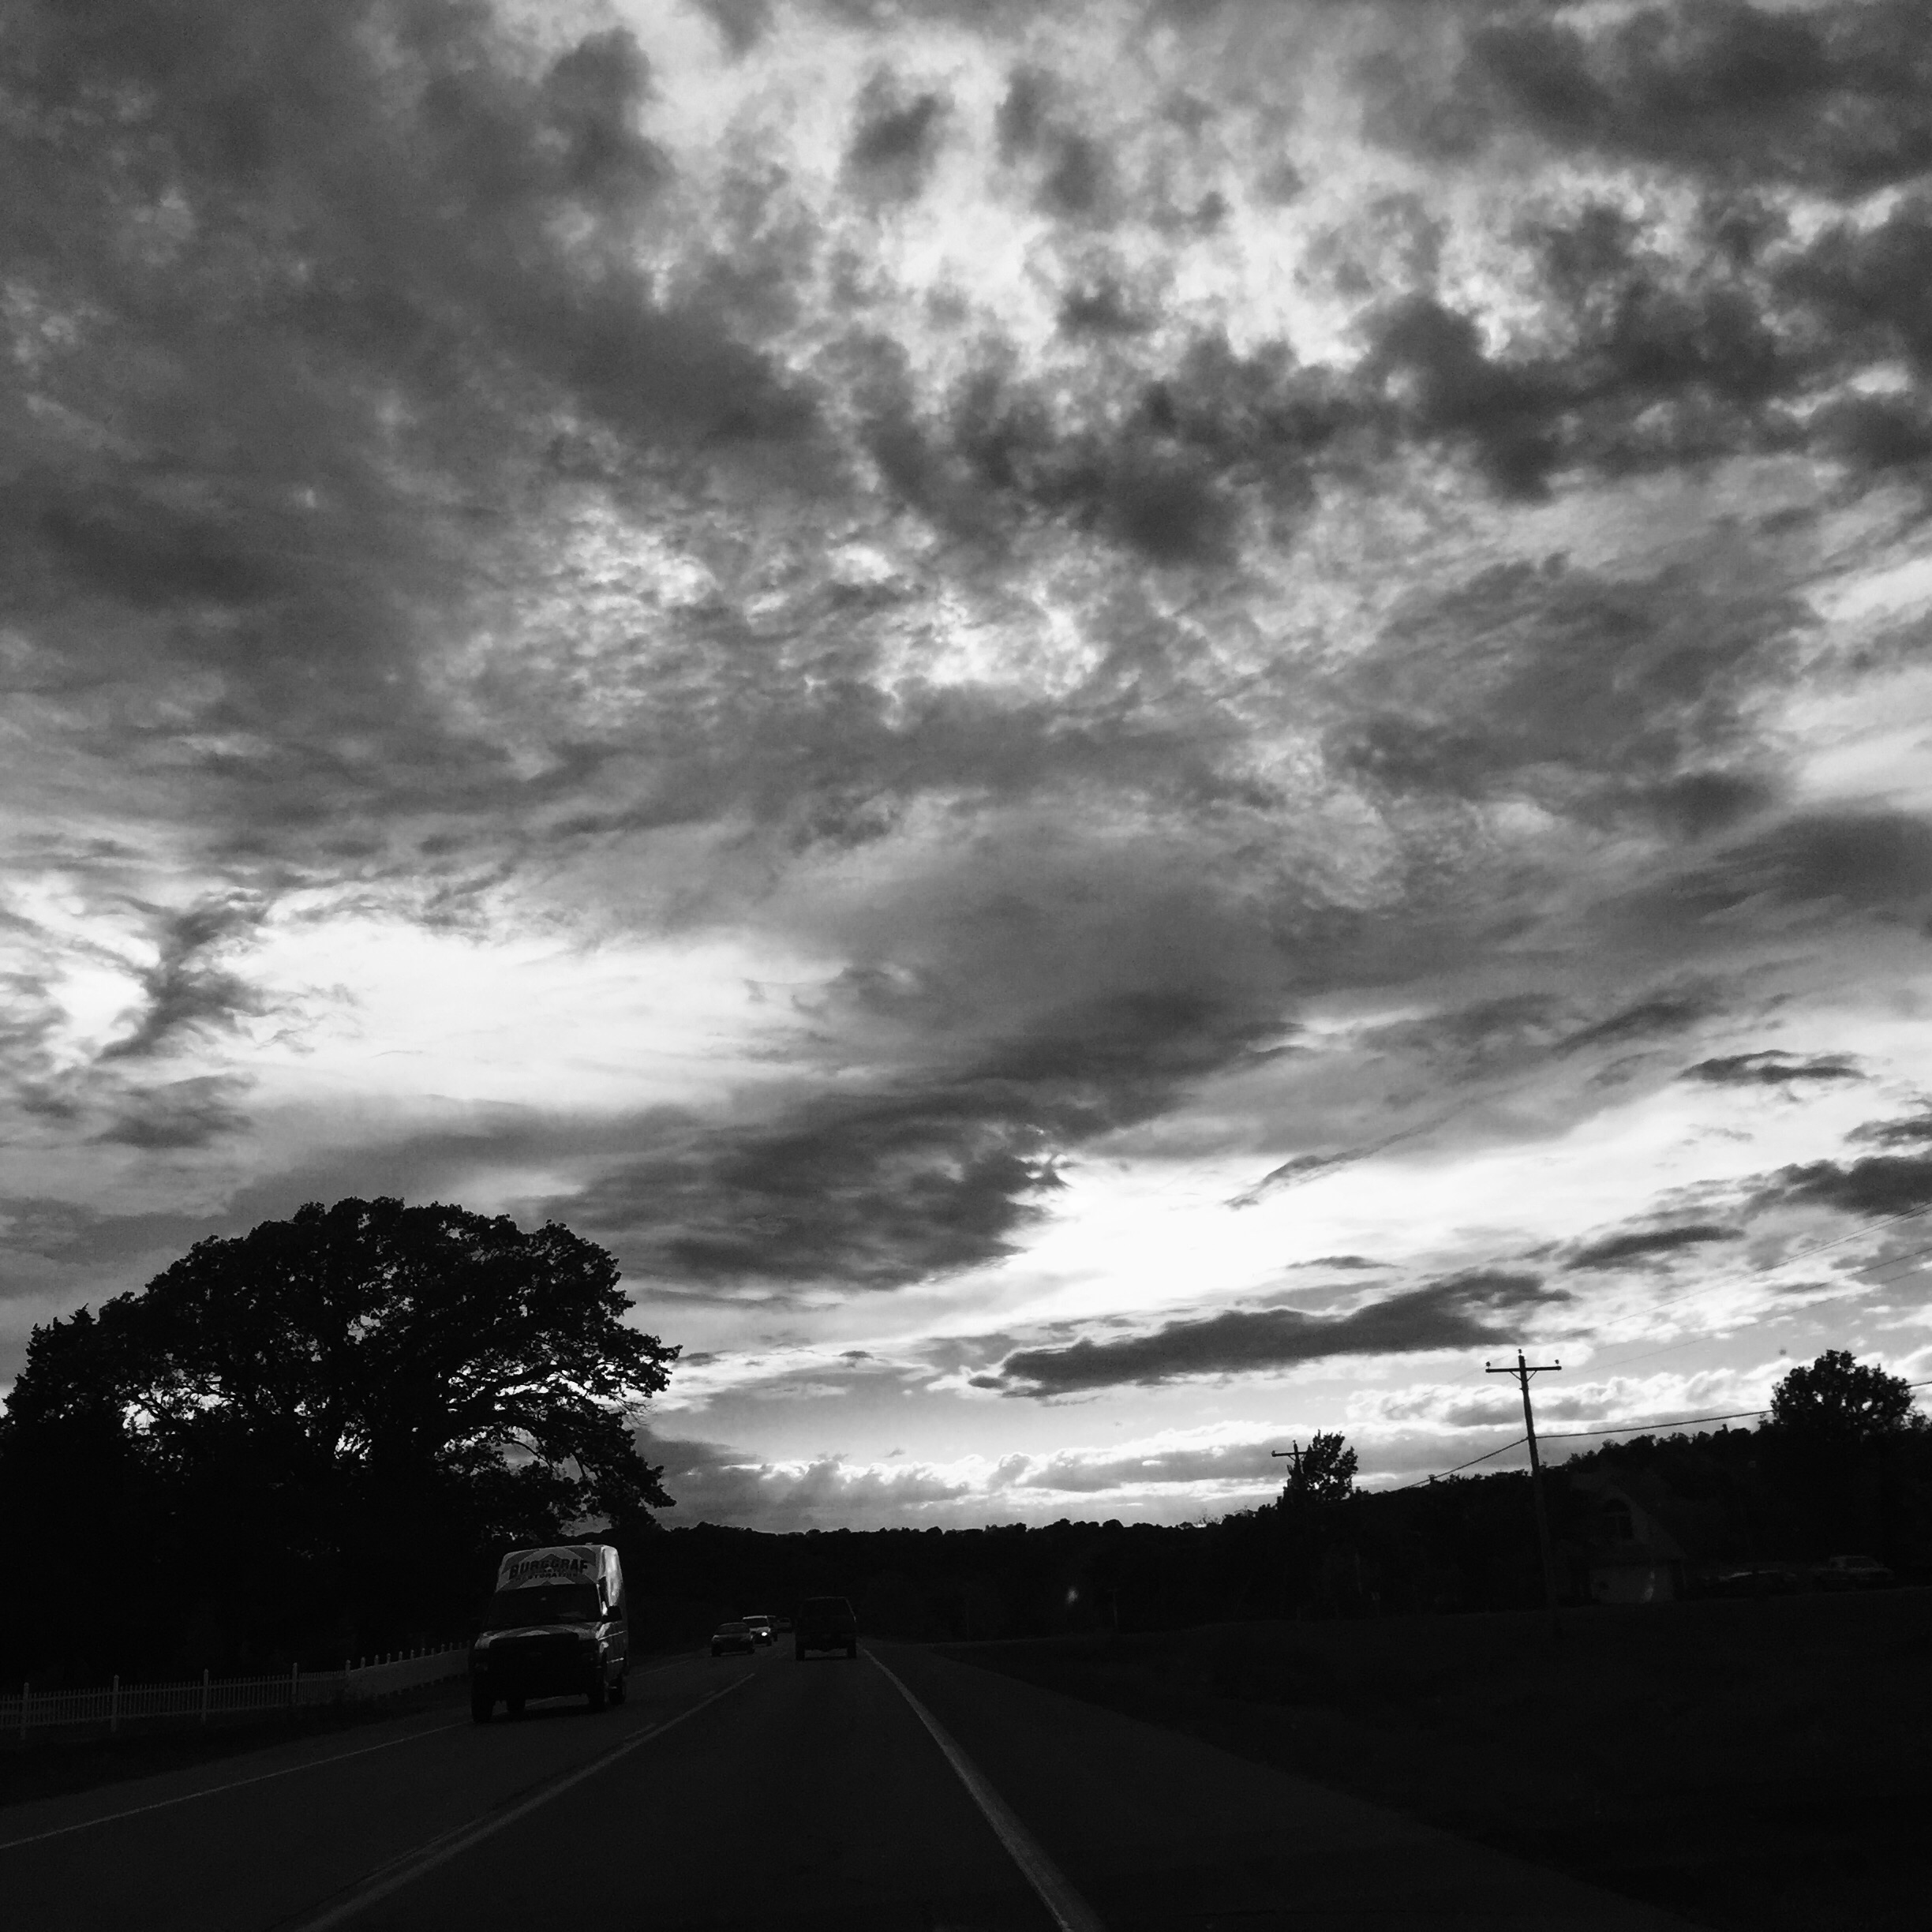 I drove from Catoosa to Tulsa, Tulsa to Owasso, Owasso to Claremore, Claremore to Collinsville, Collinsville back home to Catoosa last Thursday. The Claremore to Collinsville trip is when I caught the beginning of the sunset. But also sorry for all the driving places, earth.